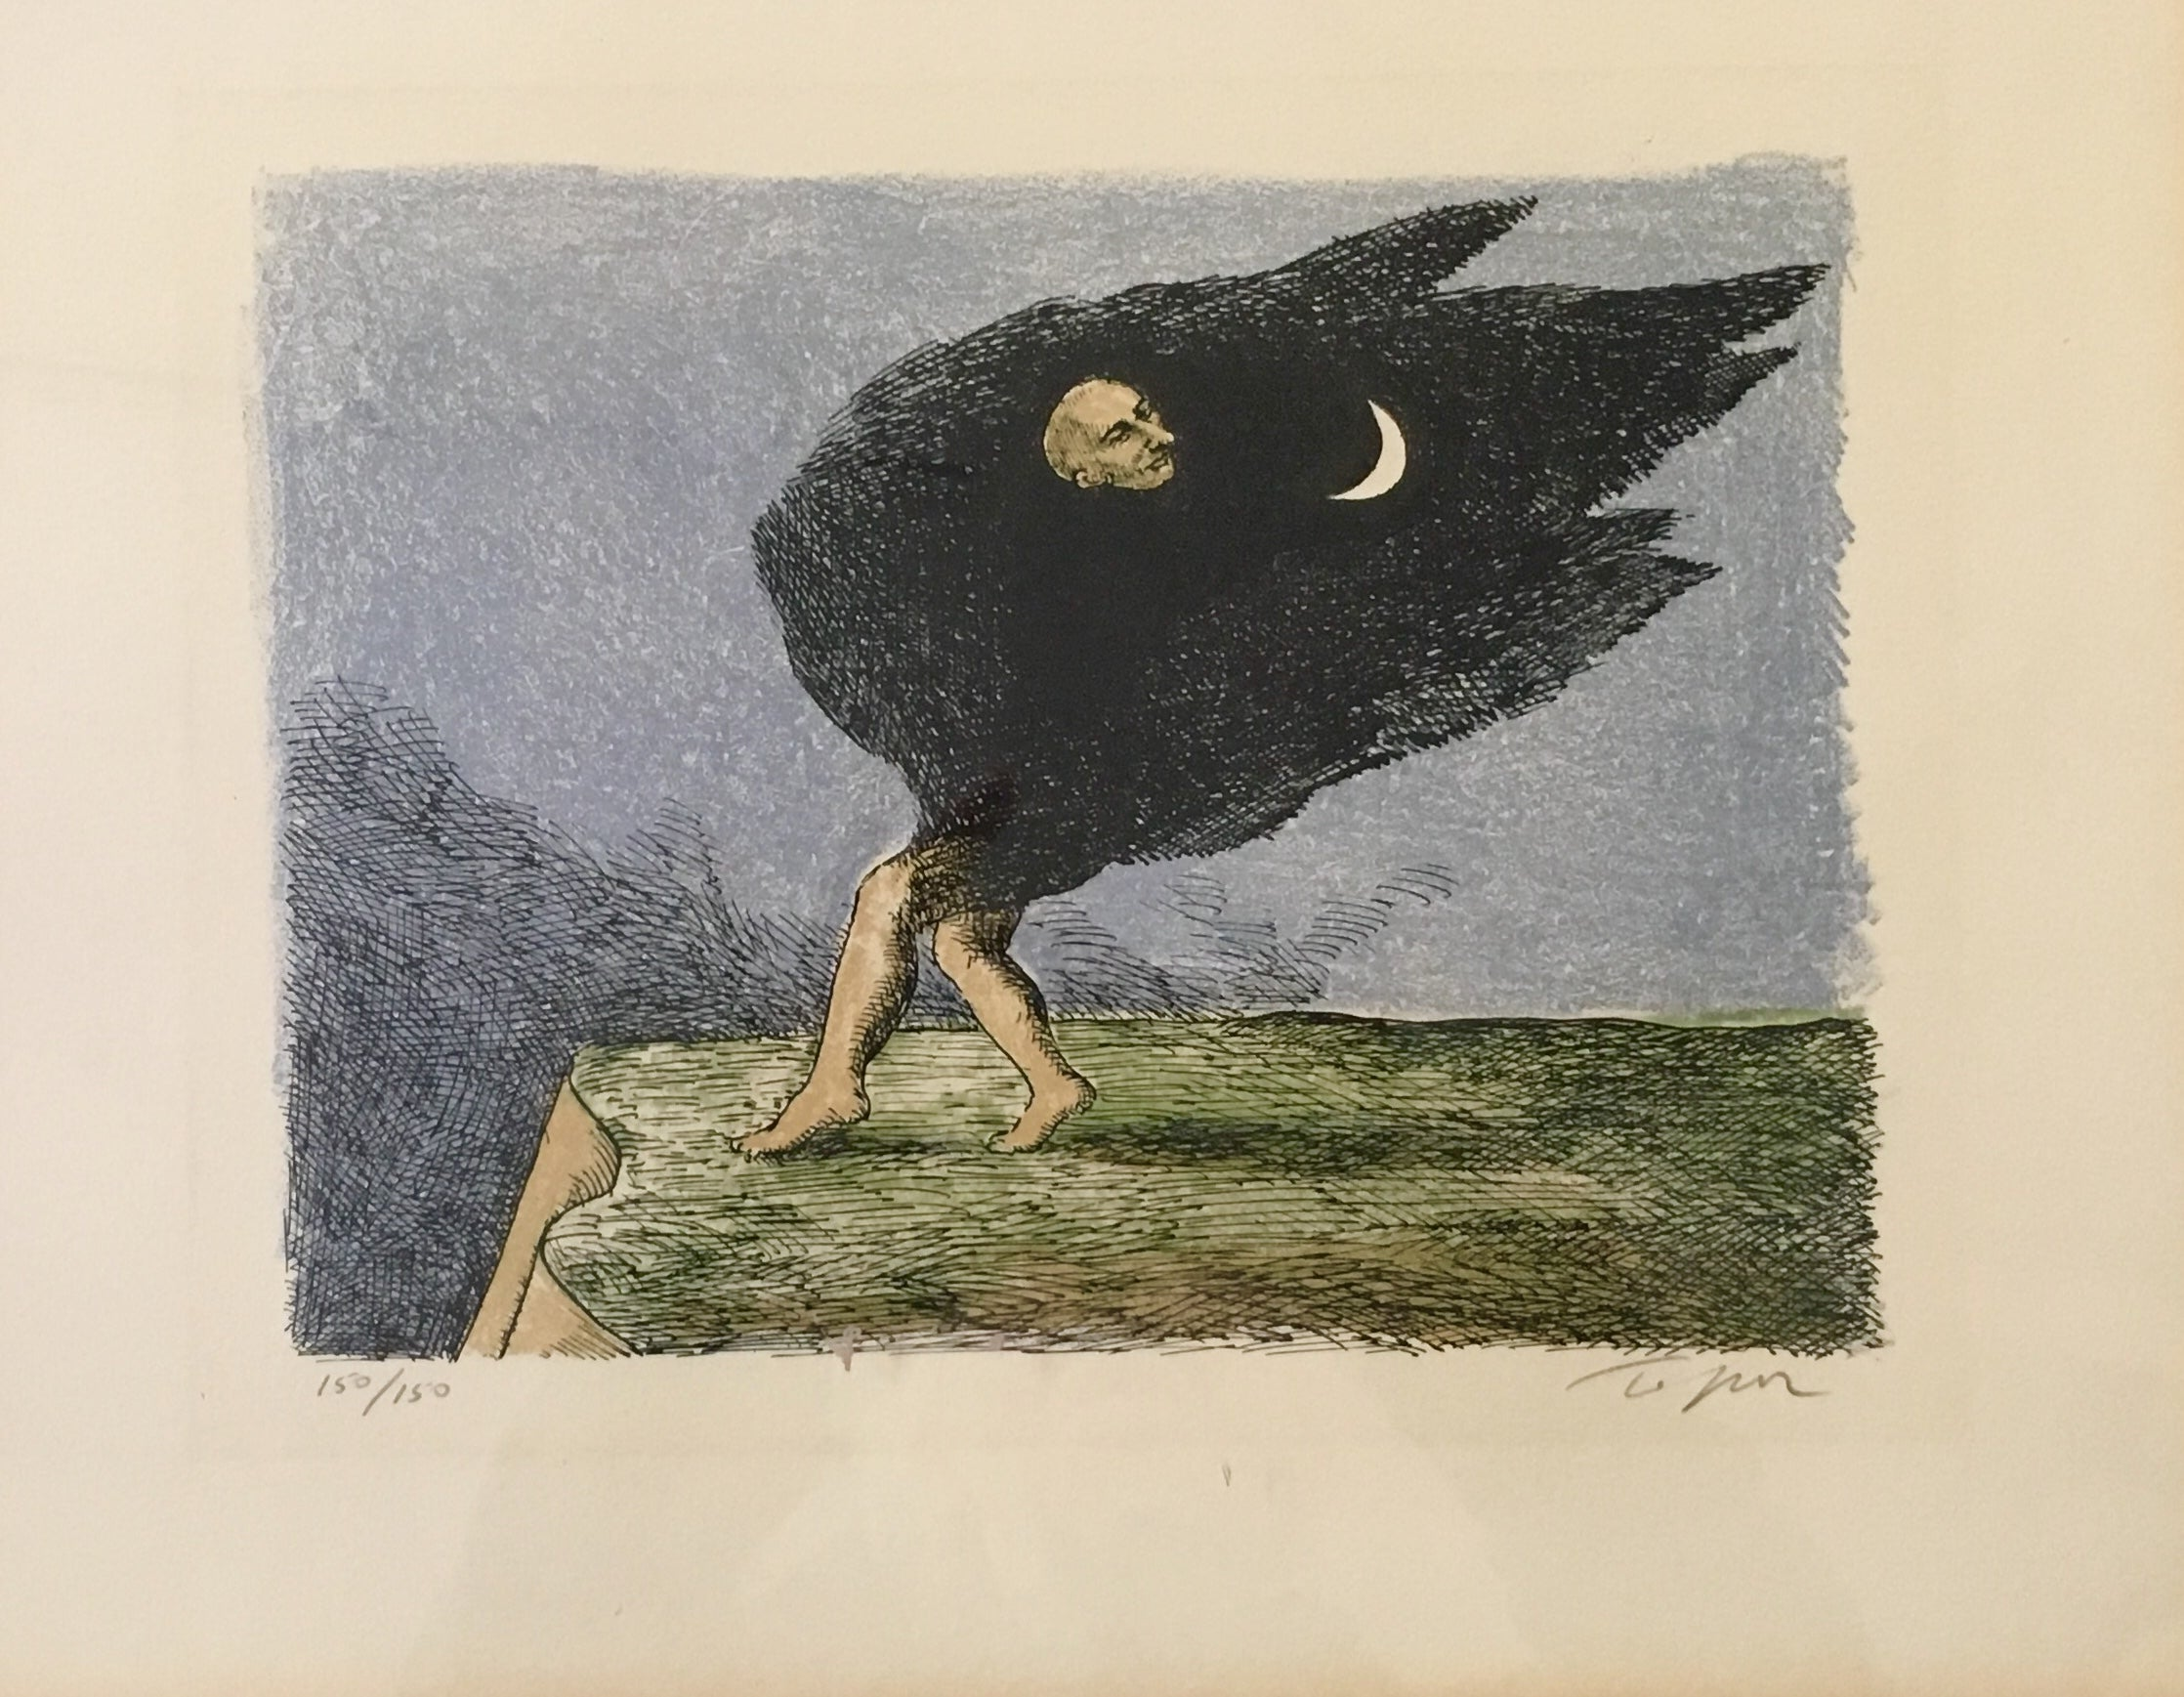 Limited Edition Etchings